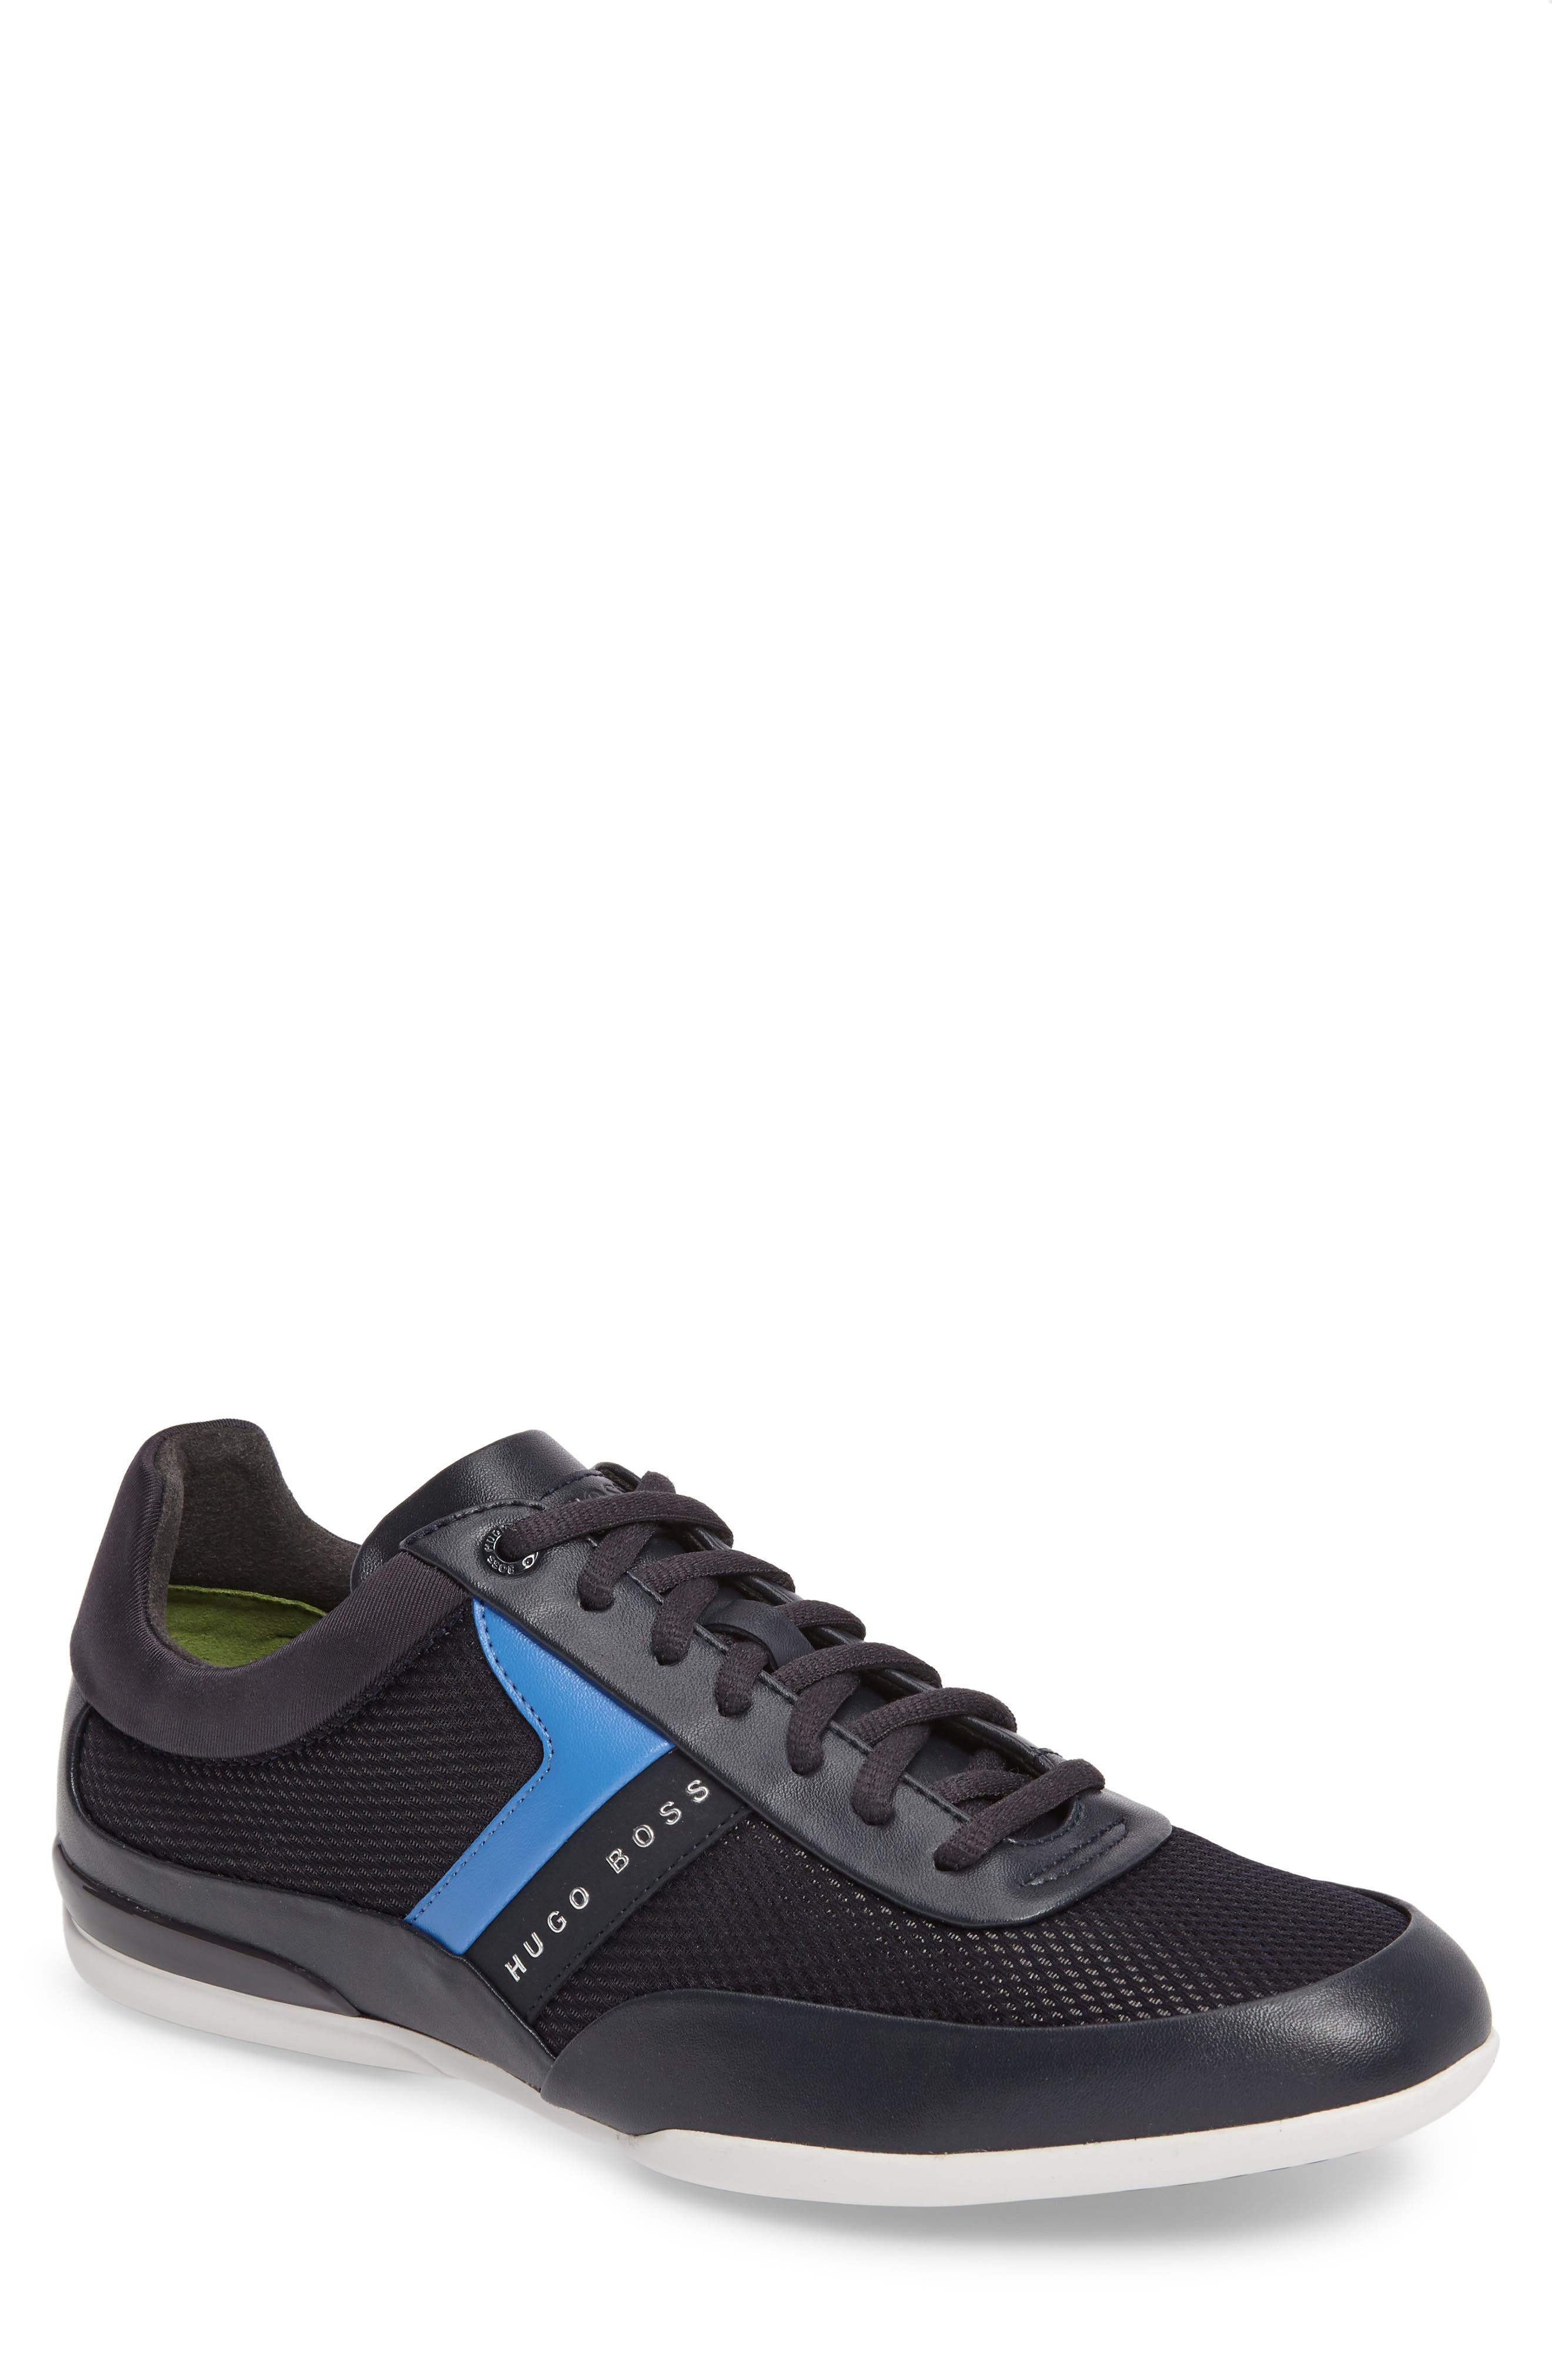 Green Space Mesh Sneaker,                         Main,                         color, Dark Blue Leather